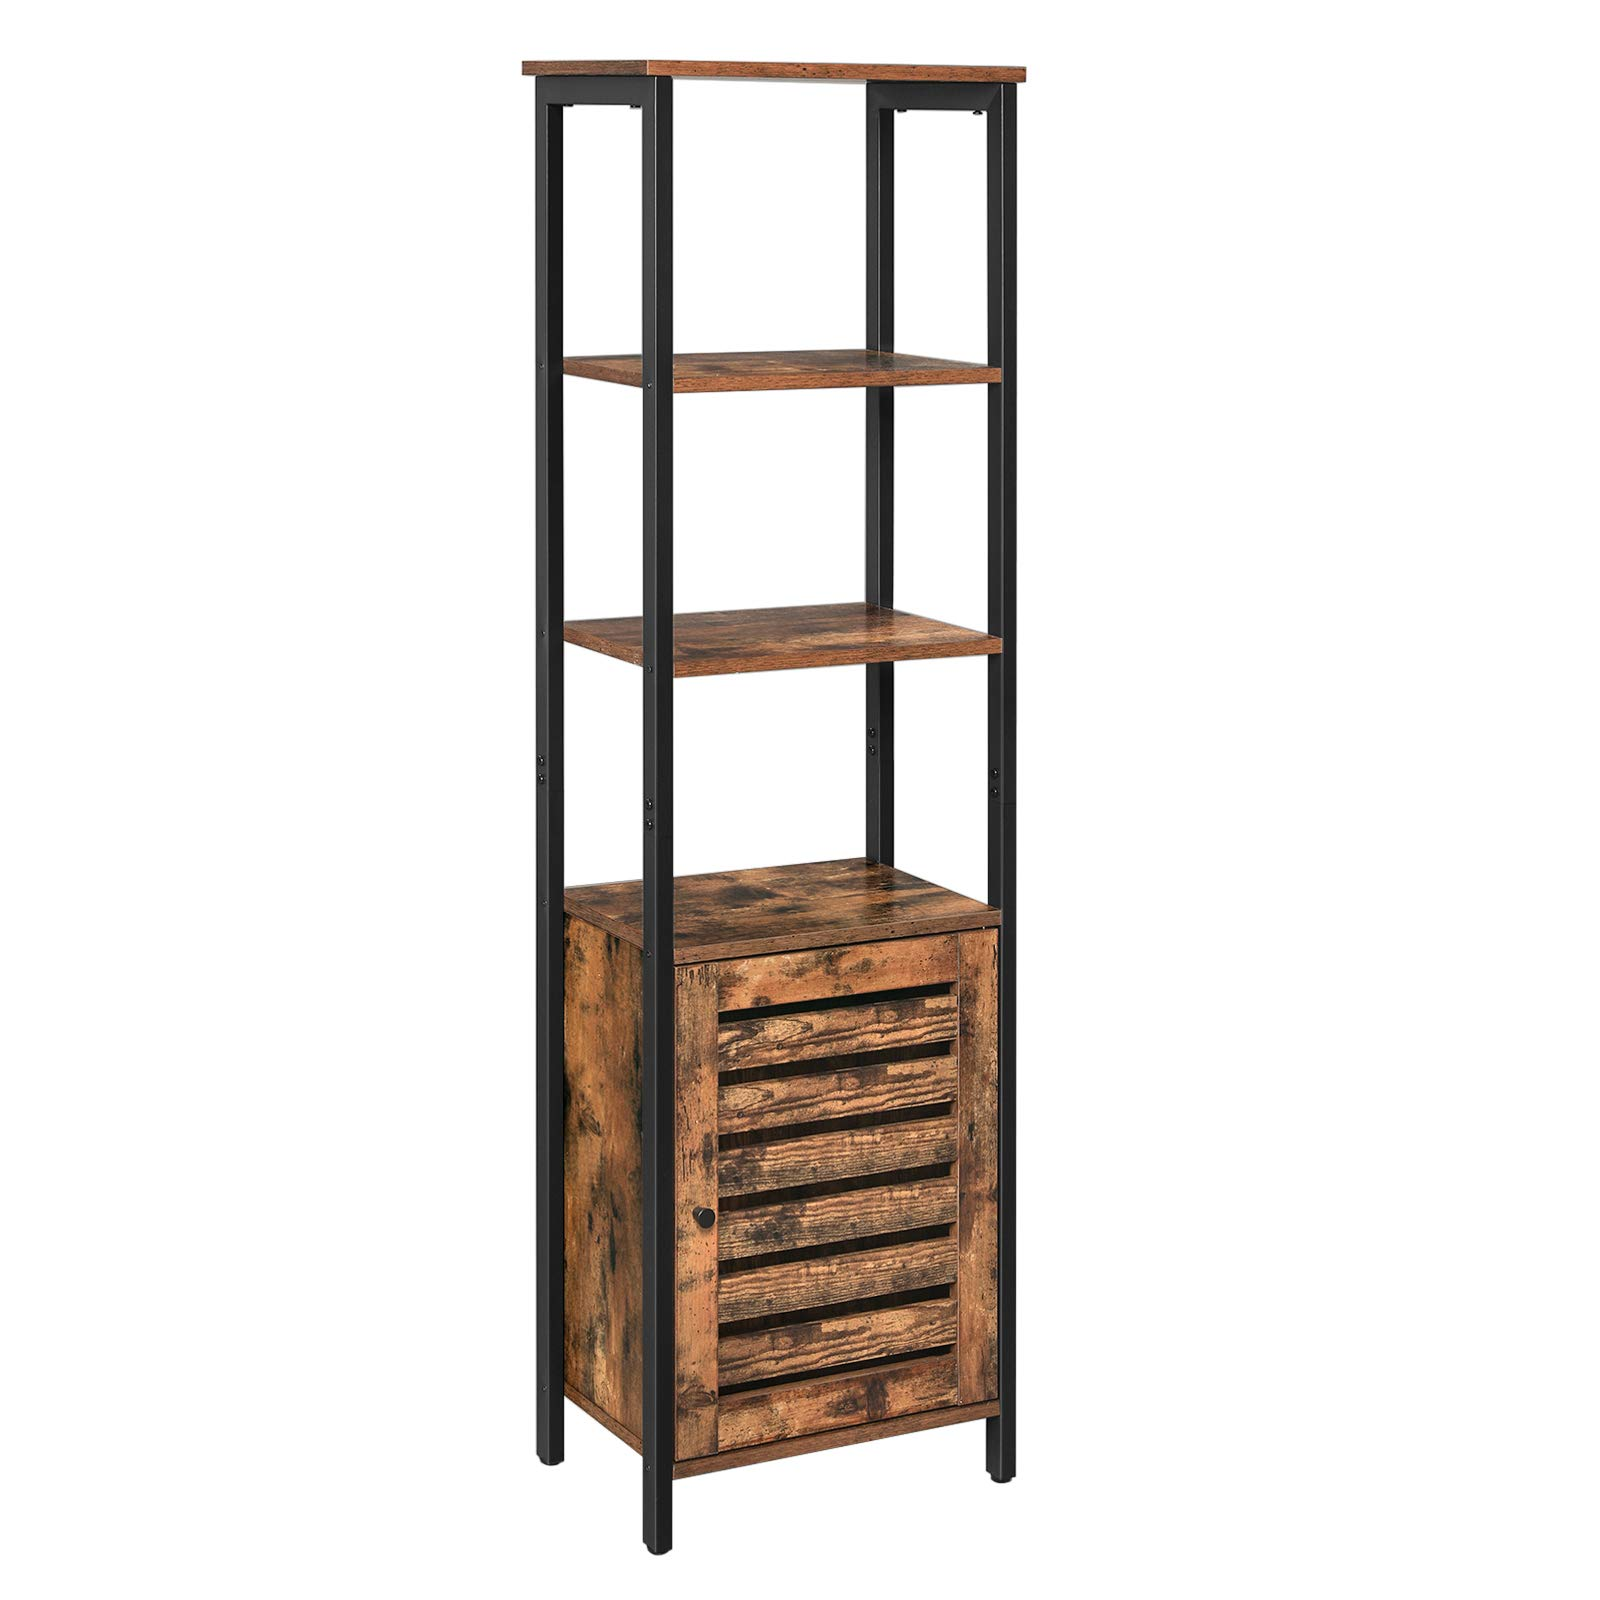 VASAGLE 4-Tier Tall Cabinet, Storage Cabinet with Door and Inside Adjustable Shelf, Sturdy Steel Frame, Space-Saving, for Living Room, Entryway, Kitchen, Bedroom, Rustic Brown and Black LSC36BX